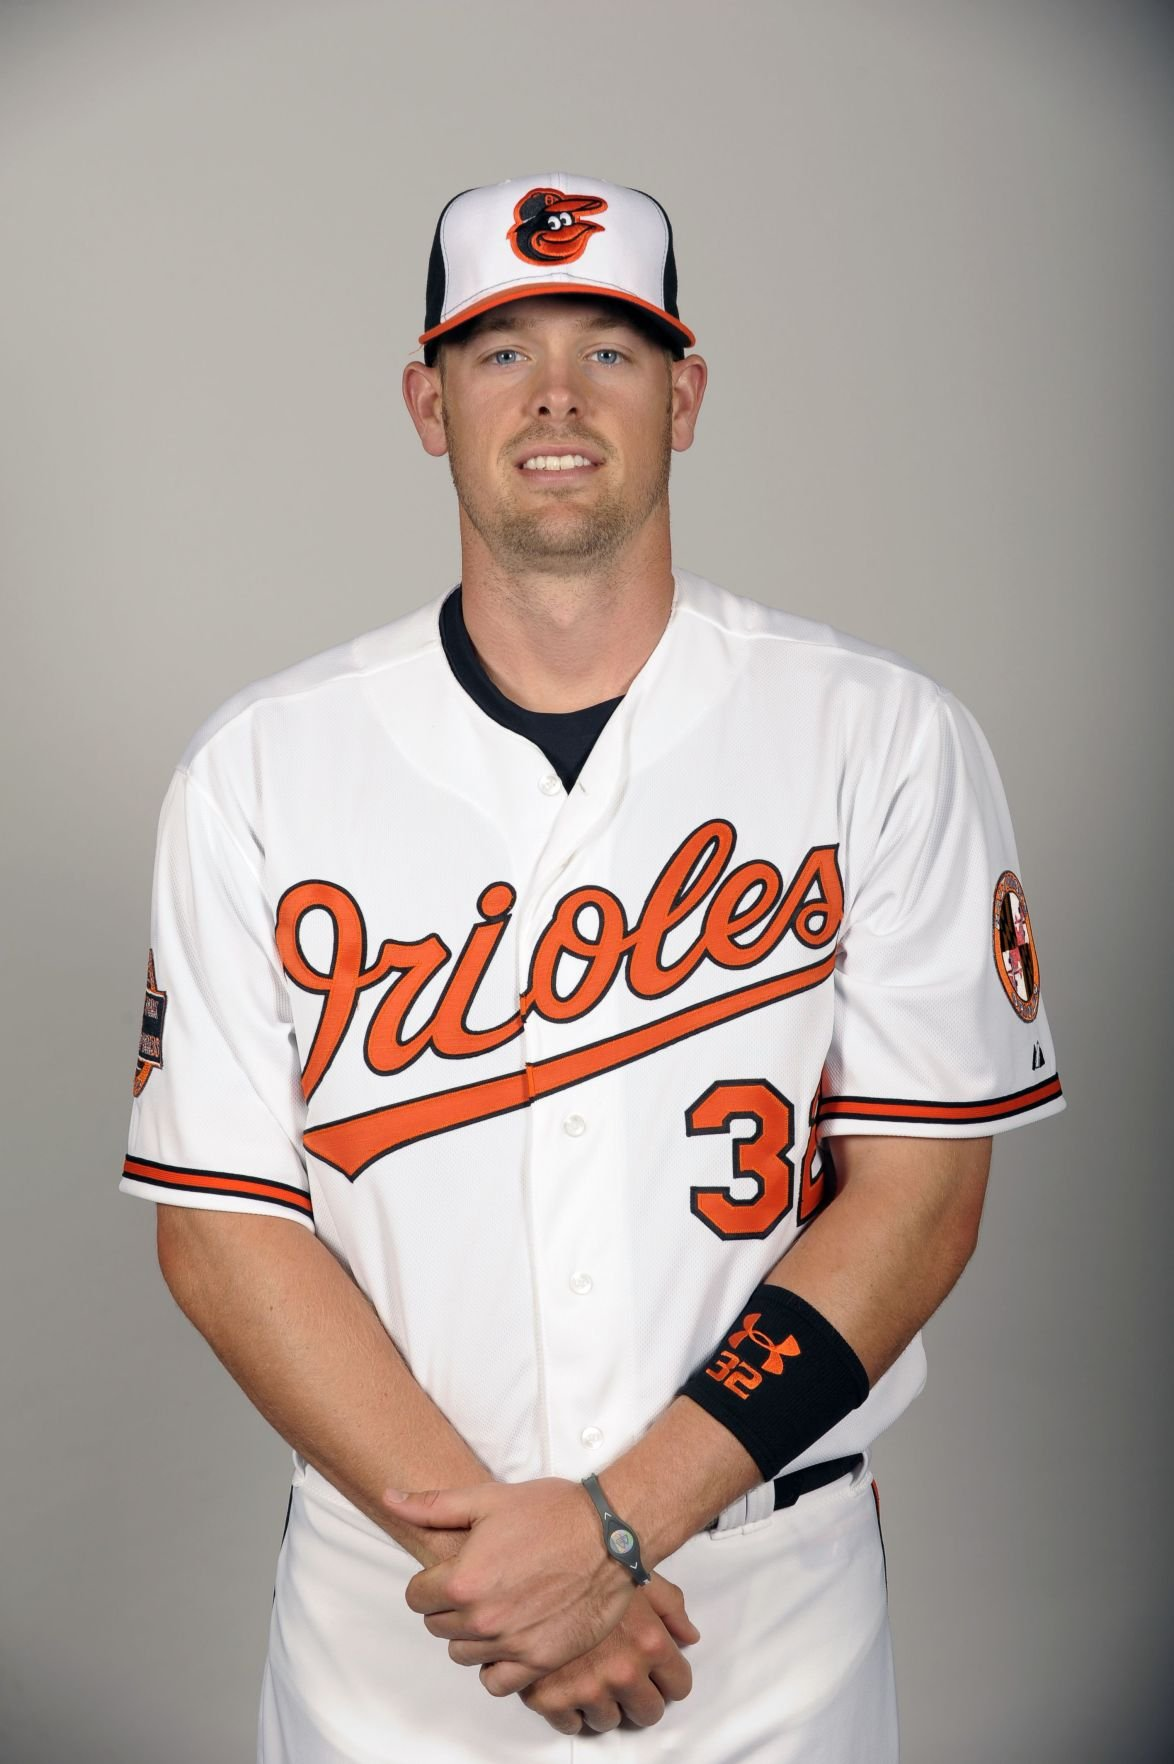 Wieters wins his second Gold Glove